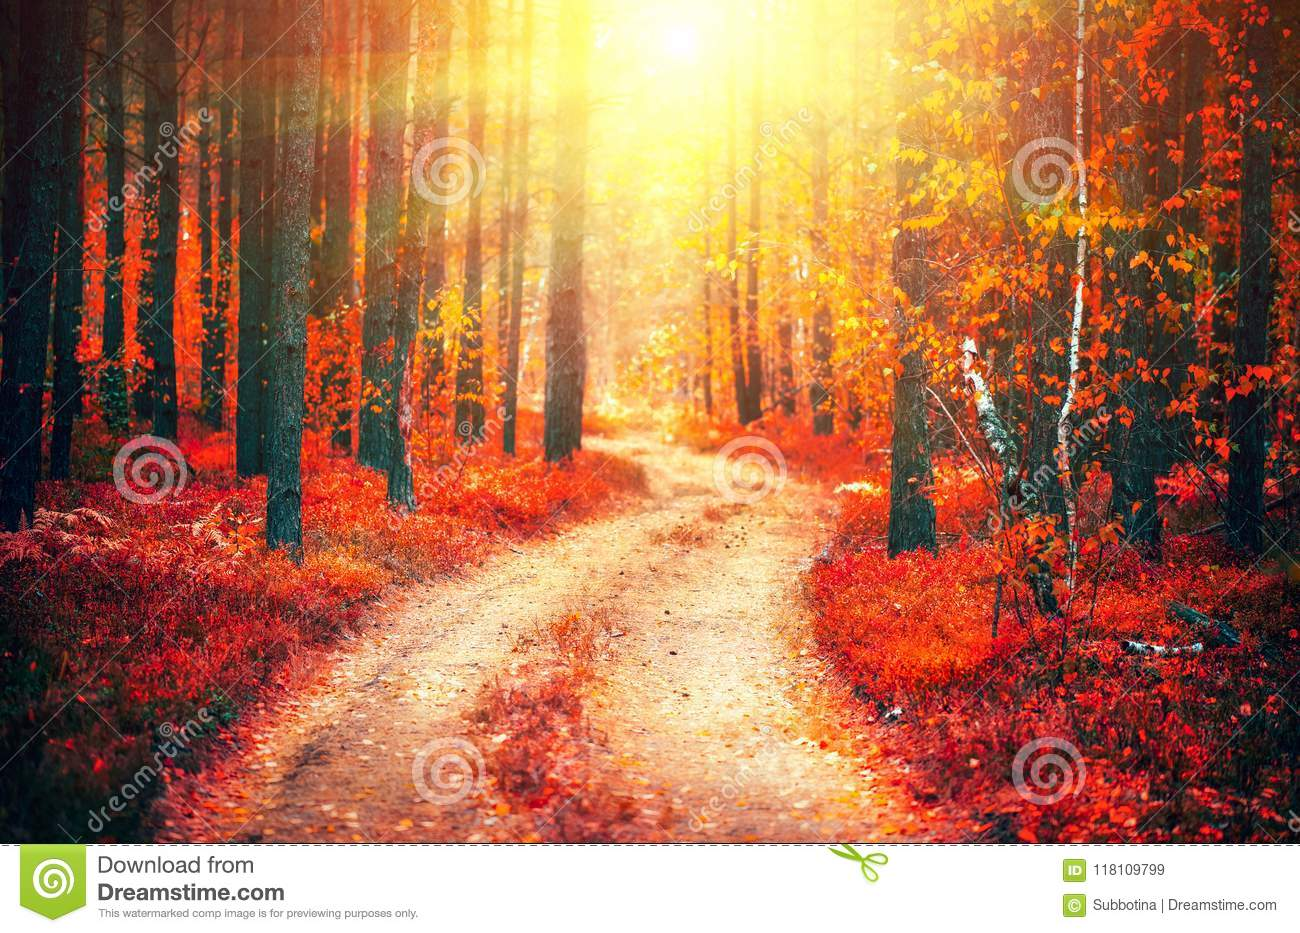 Autumn nature scene. Fantasy fall landscape. Beautiful autumnal park with pathway